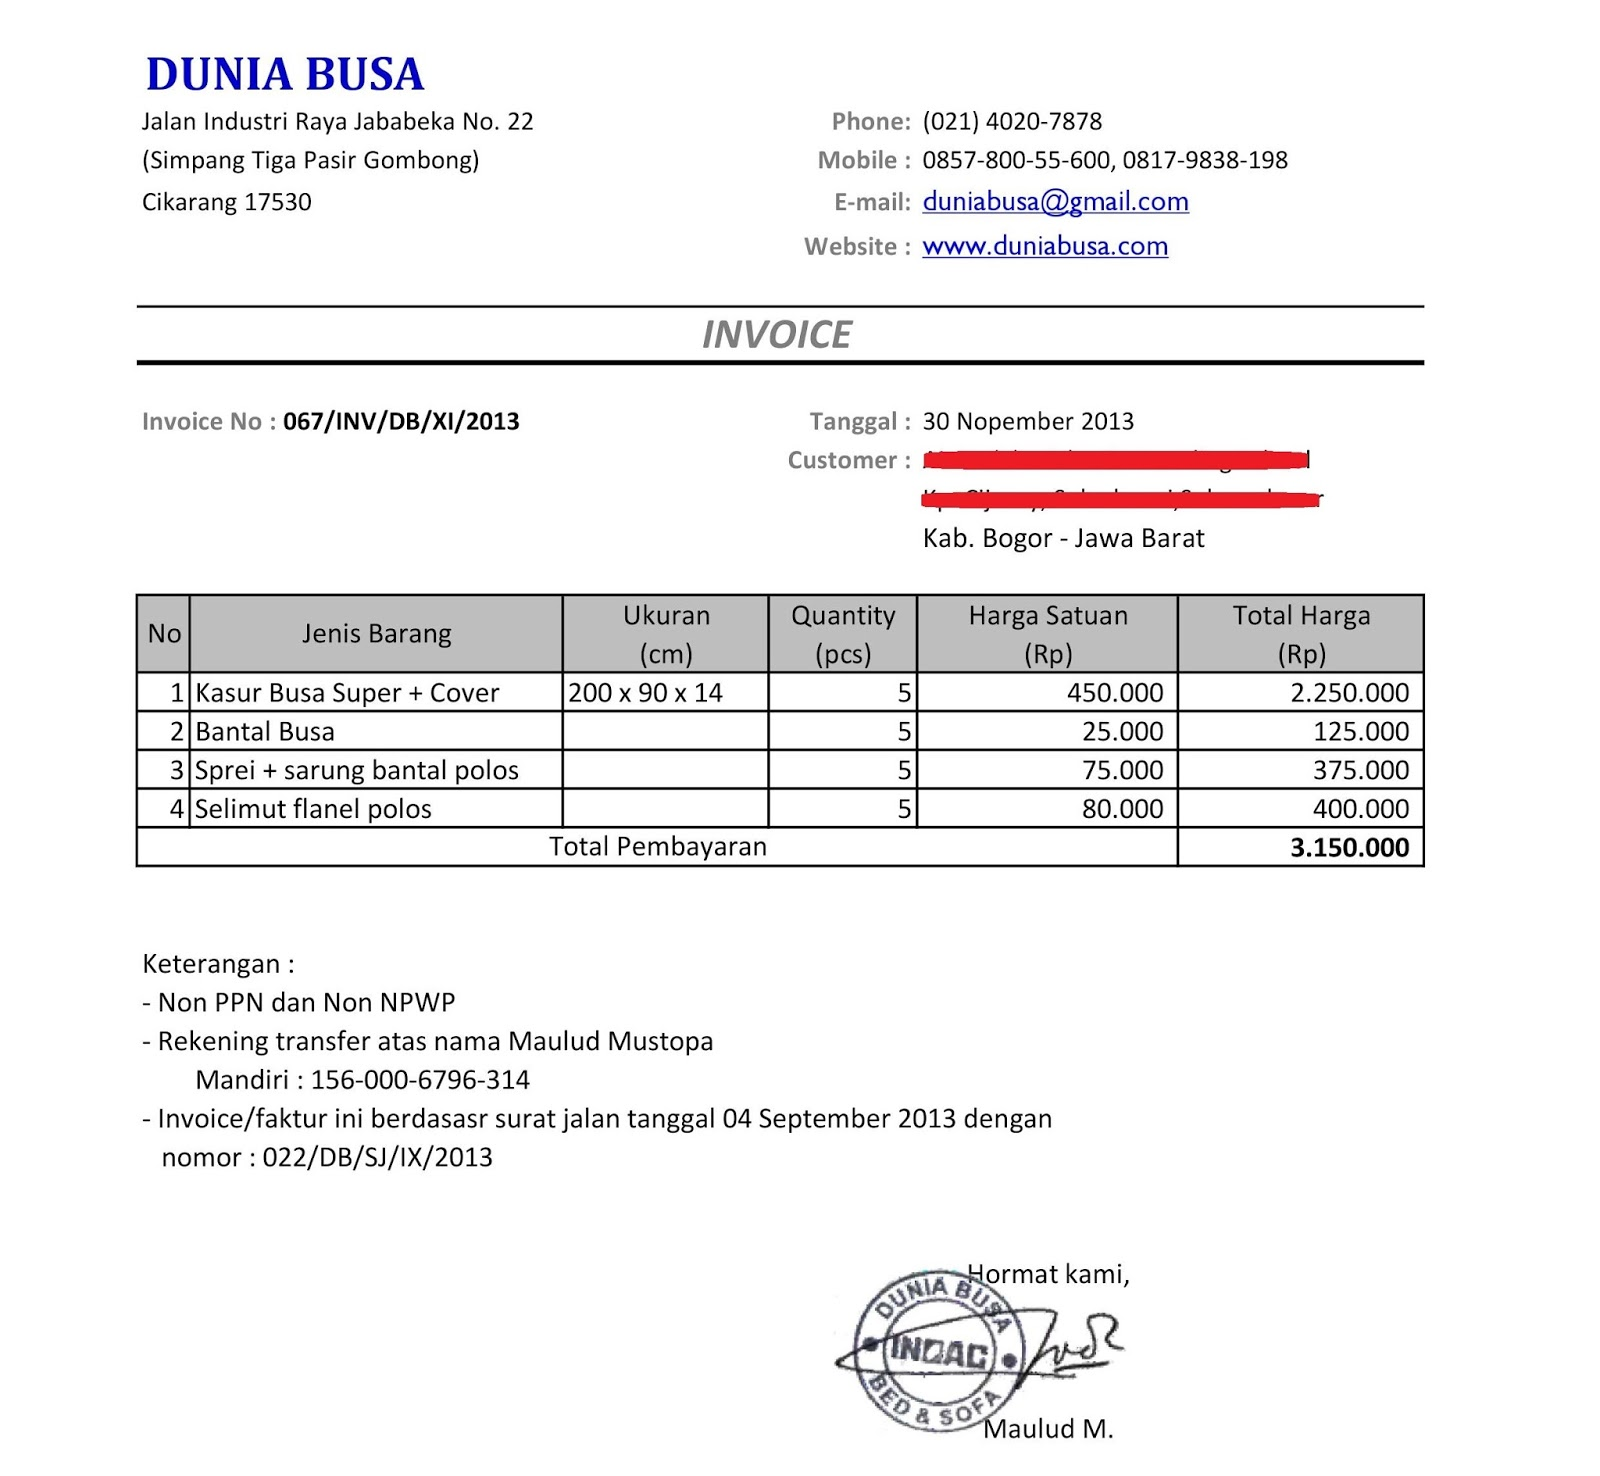 Garygrubbsus  Terrific Free Invoice Online  Create Invoice Online  Invoice Template  With Great Contoh Format Invoice Atau Surat Tagihan  Brankas Arsip  Free Invoice Online With Divine Free Printable Invoice Templates Download Also Toyota Prius Invoice Price In Addition Commercial Invoice For Fedex And Invoice Template For Google Drive As Well As Shop Invoice Additionally Software Invoice From Sklepco With Garygrubbsus  Great Free Invoice Online  Create Invoice Online  Invoice Template  With Divine Contoh Format Invoice Atau Surat Tagihan  Brankas Arsip  Free Invoice Online And Terrific Free Printable Invoice Templates Download Also Toyota Prius Invoice Price In Addition Commercial Invoice For Fedex From Sklepco